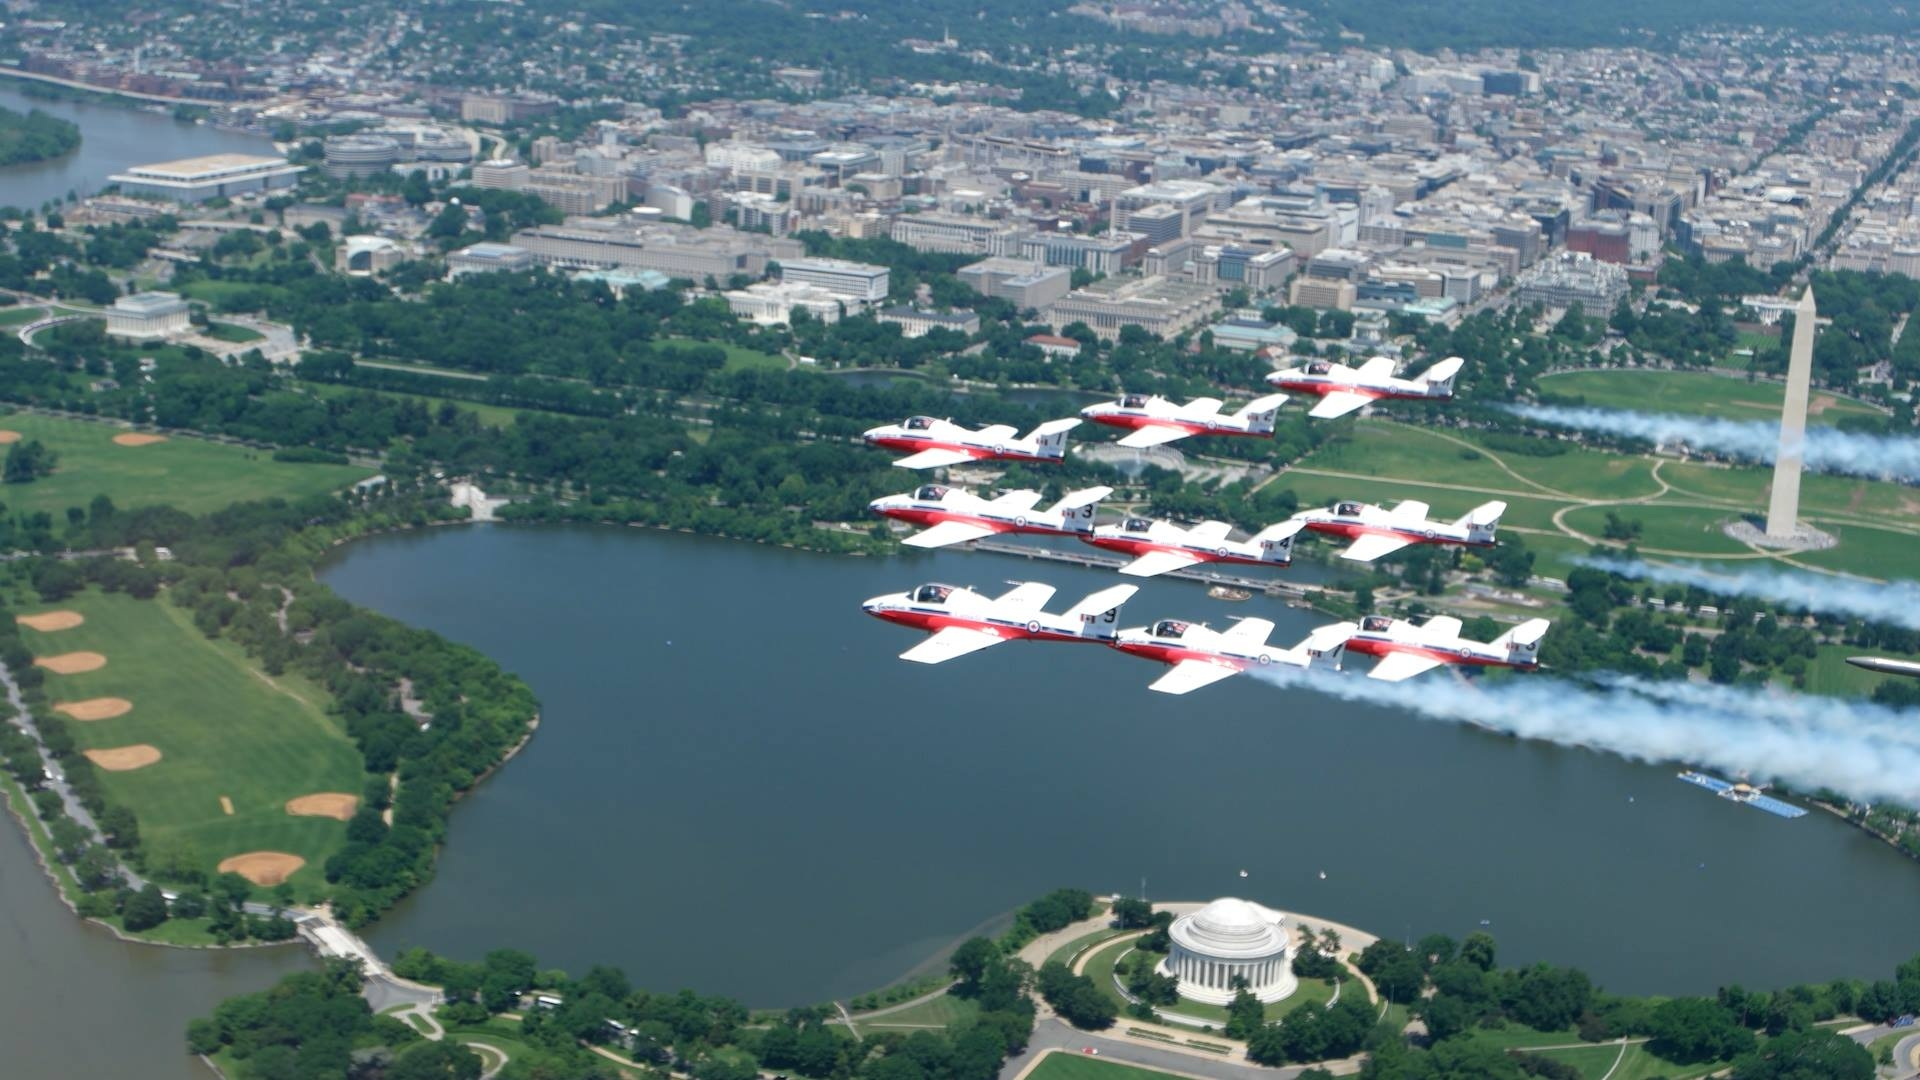 Snowbirds CT-114 Tutor over Washington